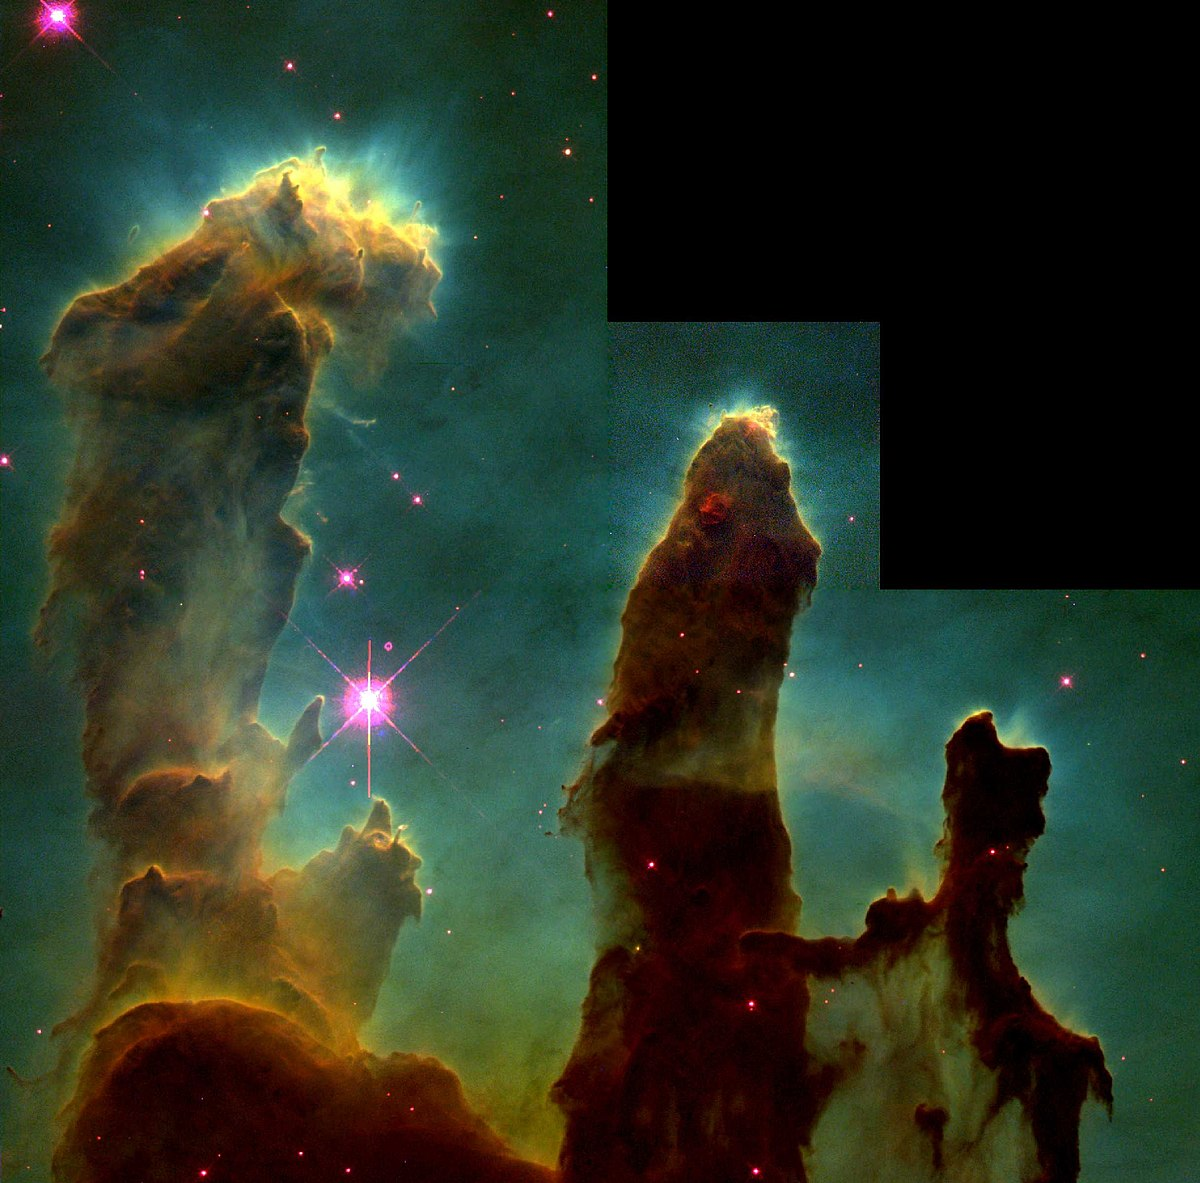 TIL that it has been theorised that the Pillars of Creation, made famous by the Hubble Telescope, may no longer exist. They may have been destroyed by a supernova shockwave around 6000 years ago, but the light from this hasn't reached Earth, so we won't see it for another 1000 years.